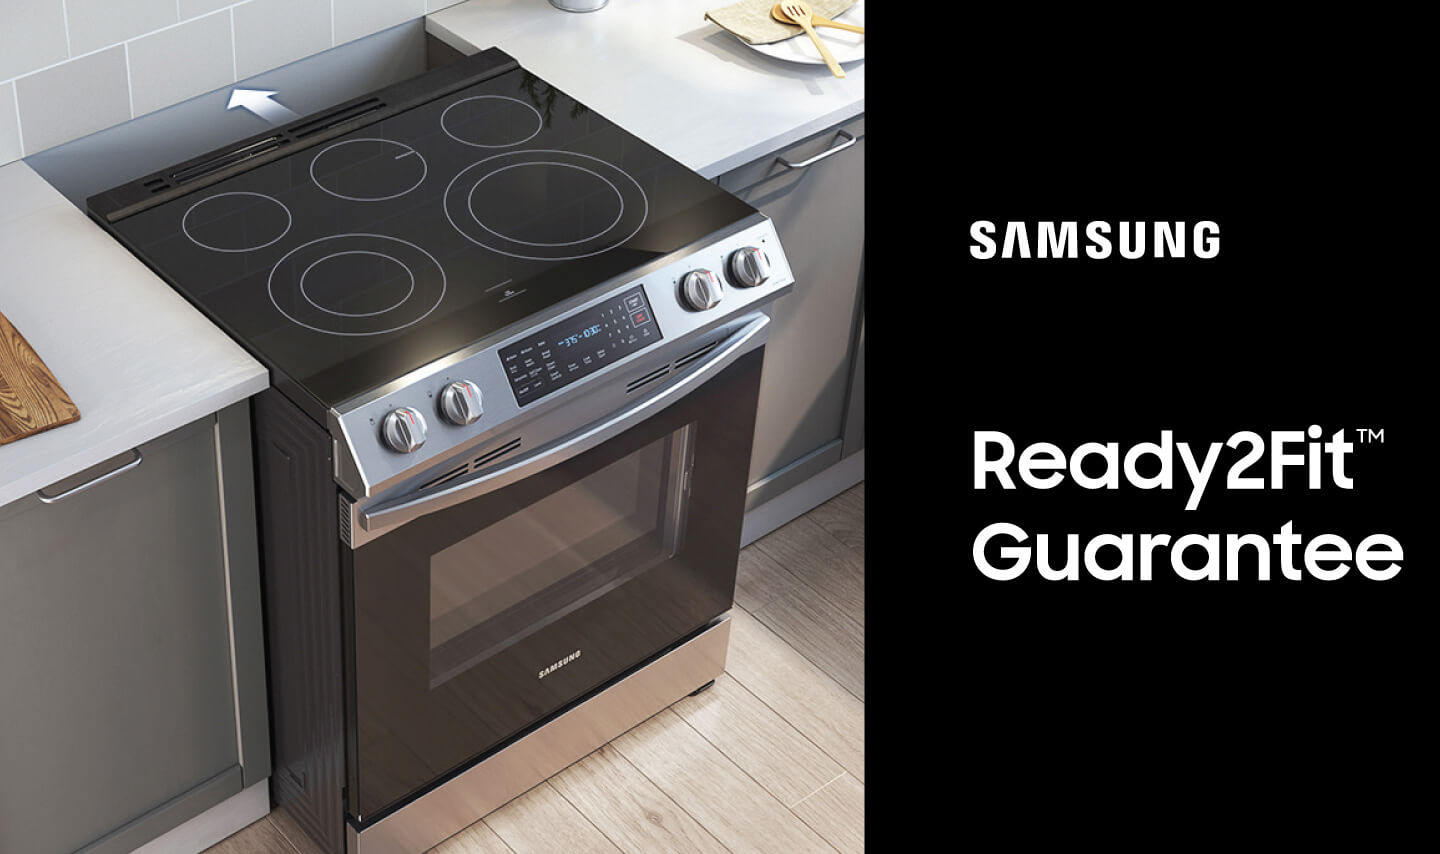 Samsung Ready2Fit Guarantee